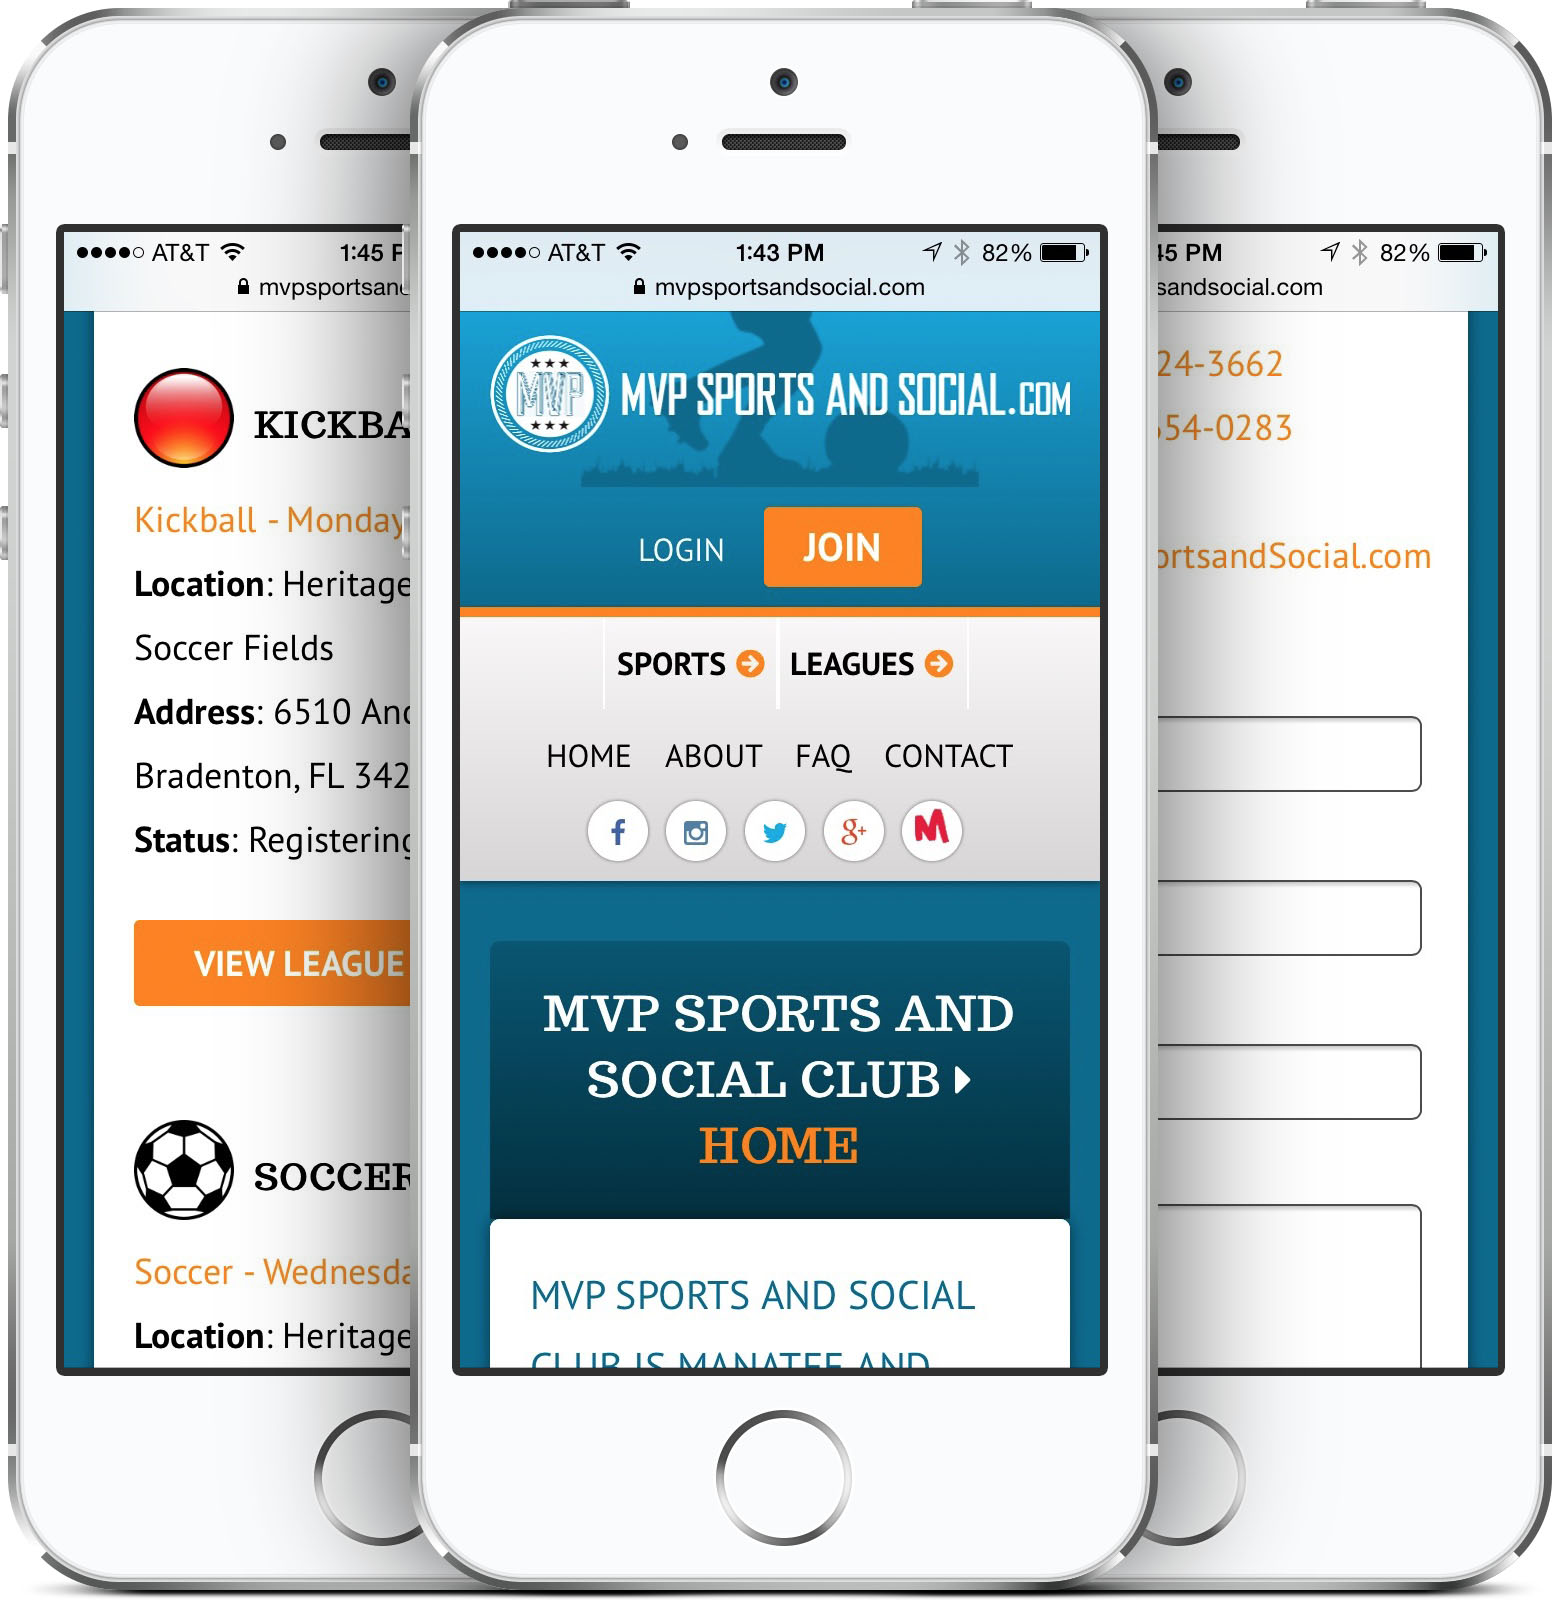 MVP Sports and Social Club Responsive Web Design on an iPhone